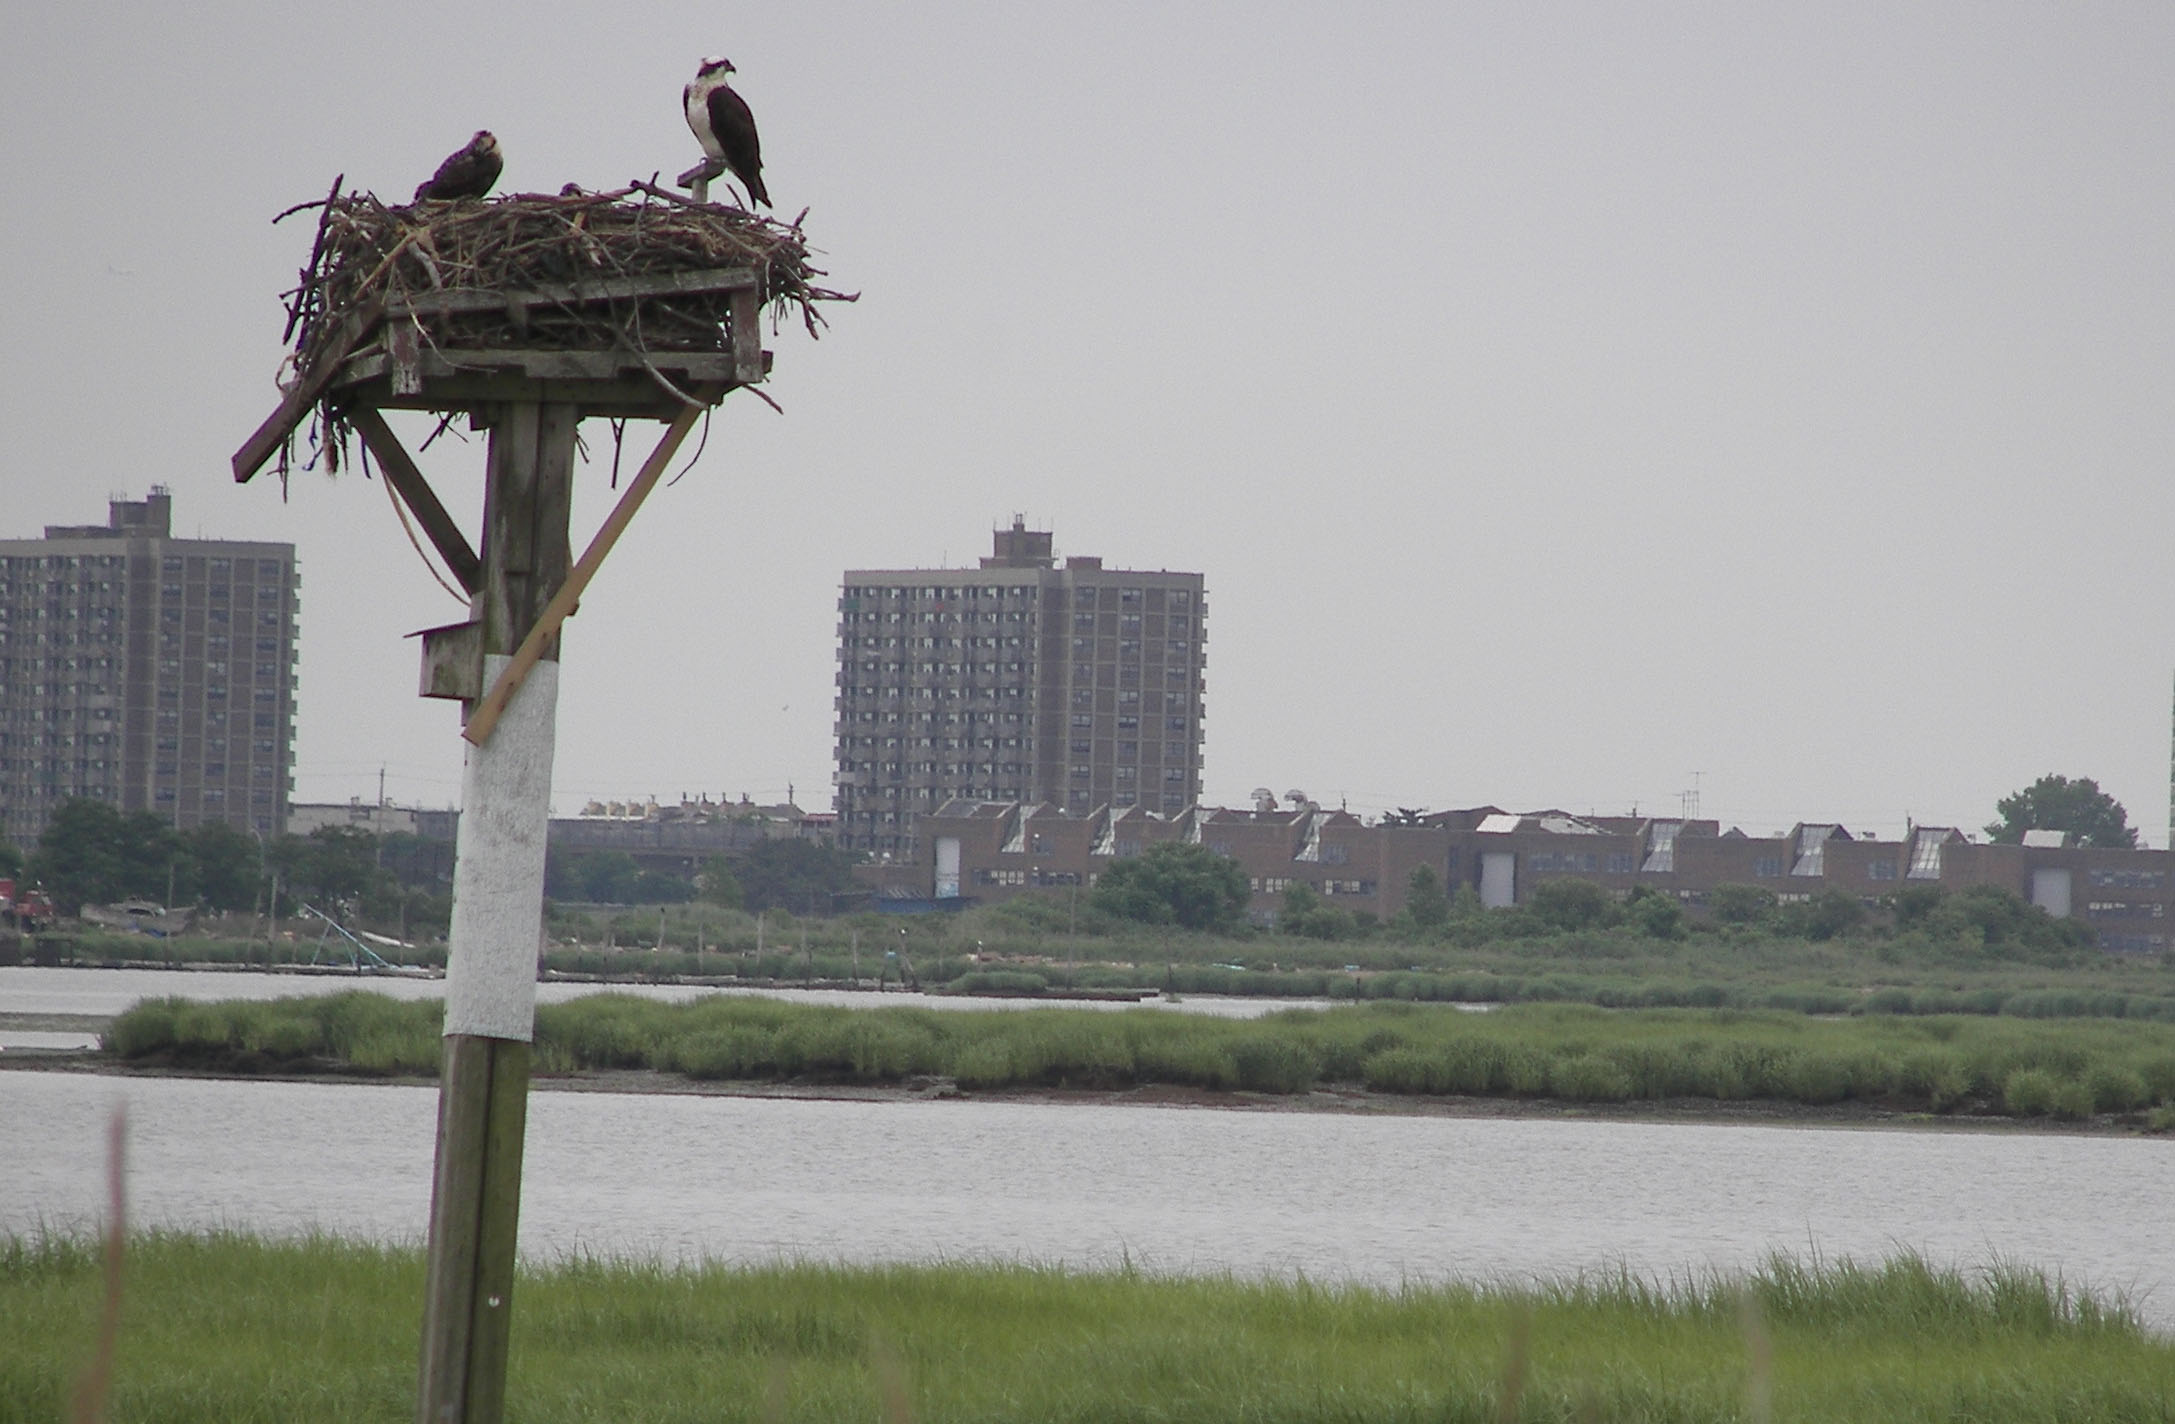 The Jamaica Bay Wildlife Refuge in Gateway National Recreation Area is a key stop over for migrating birds as well as home to many others.